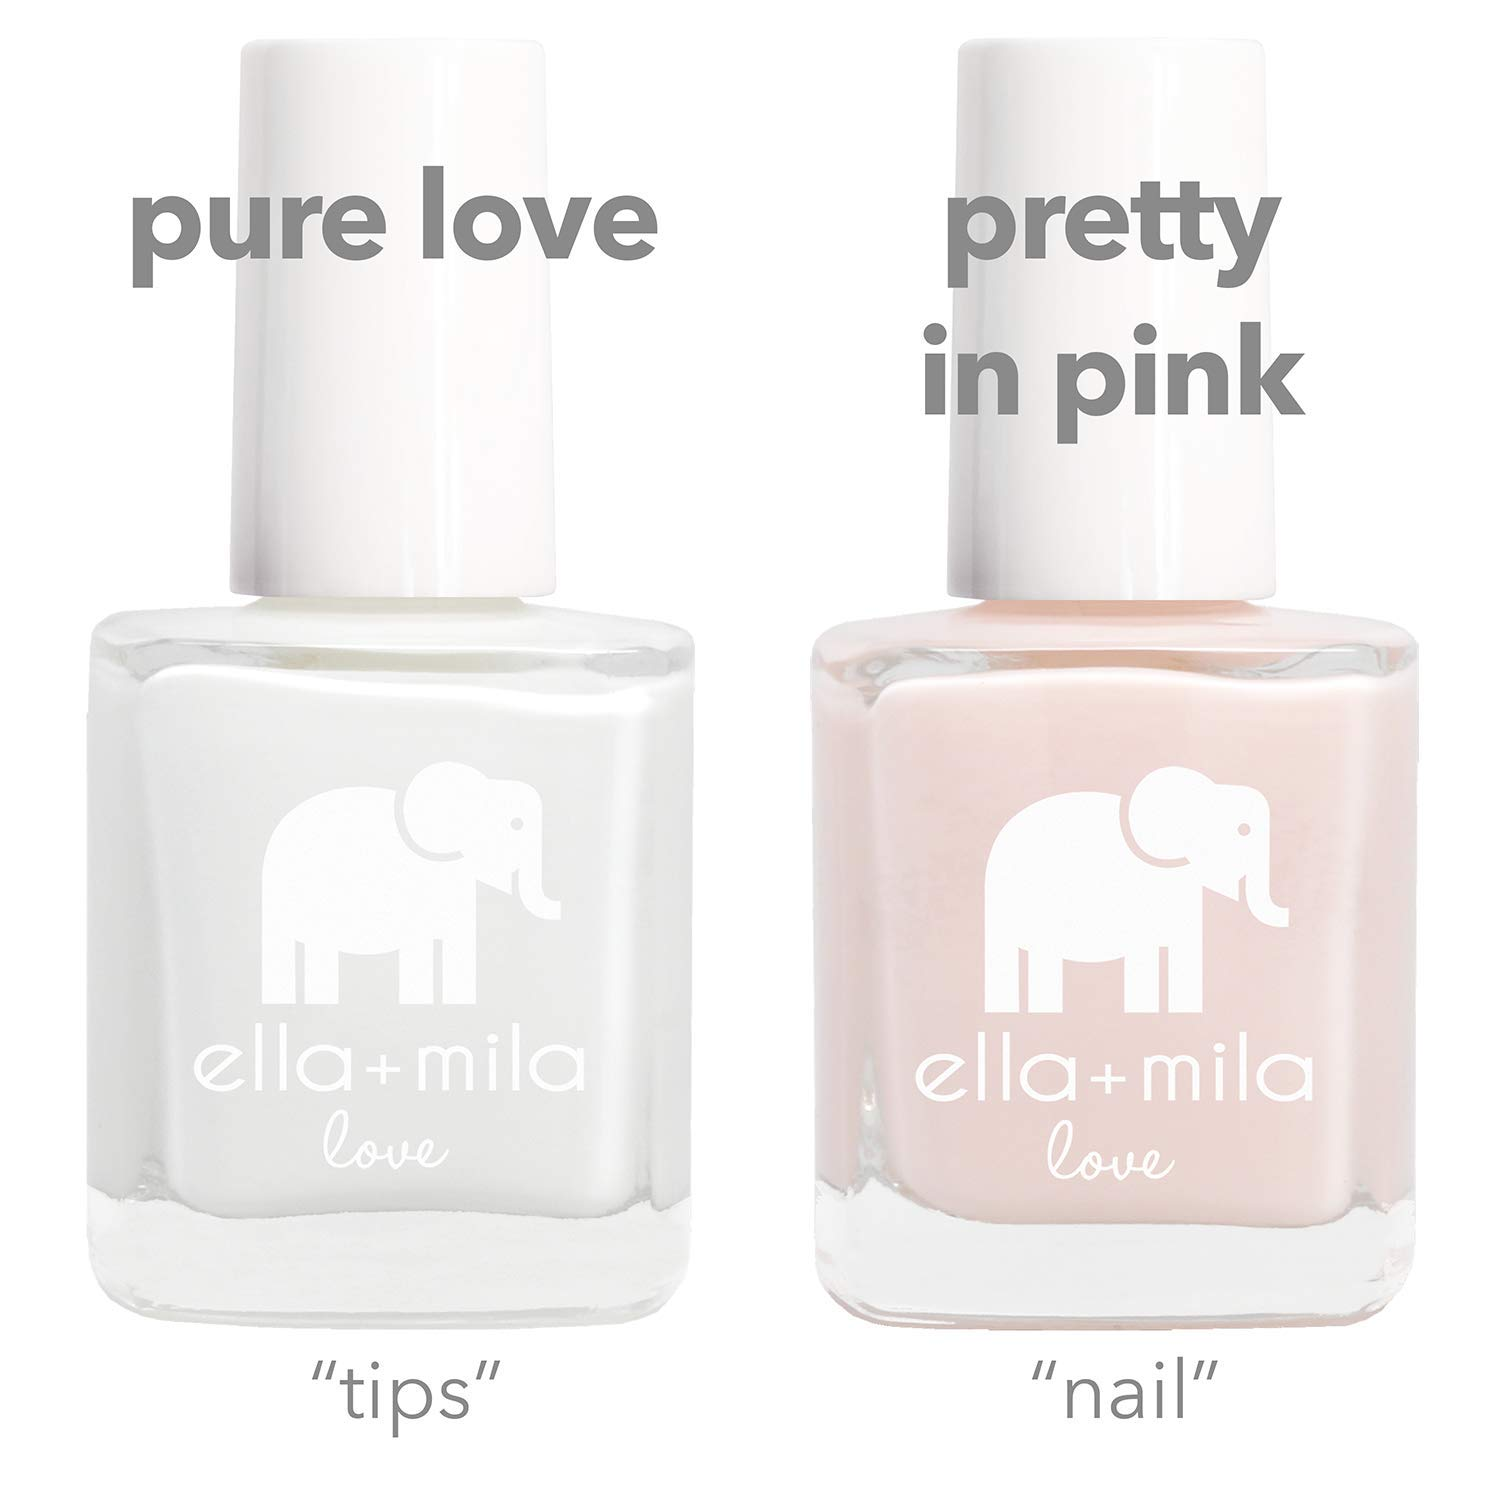 Clear pink nail polish for French manicure